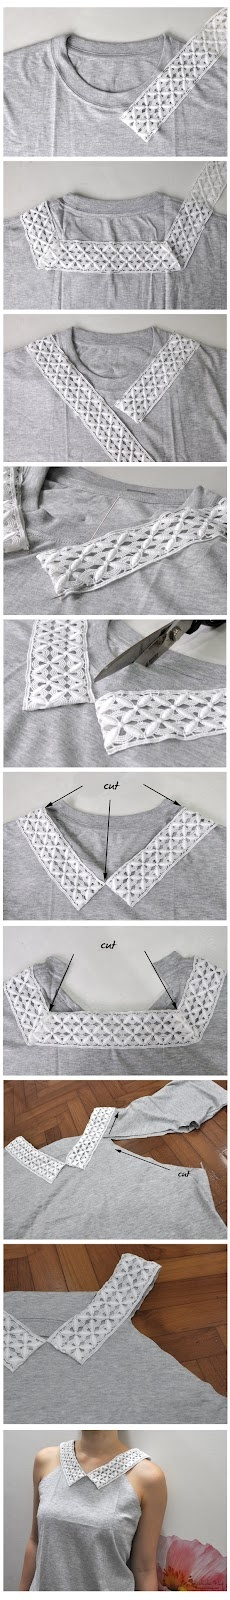 Entre Closets: DIY - Camiseta